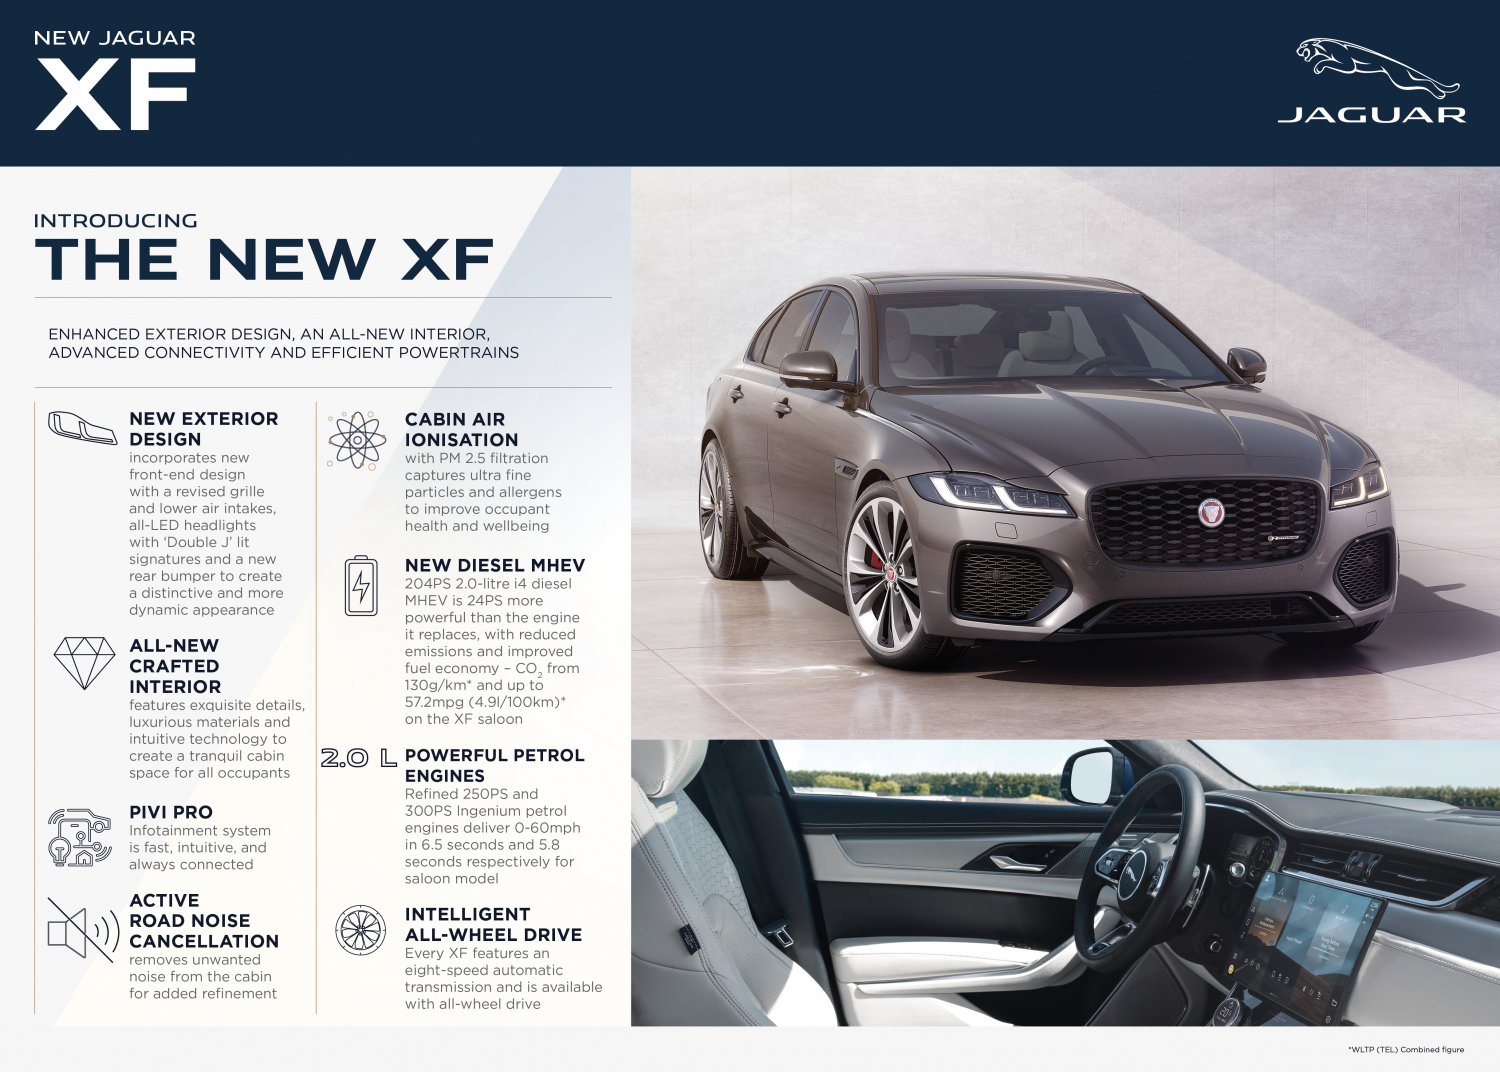 New Jaguar Xf: Beautiful, Luxurious, Connected - Image 5